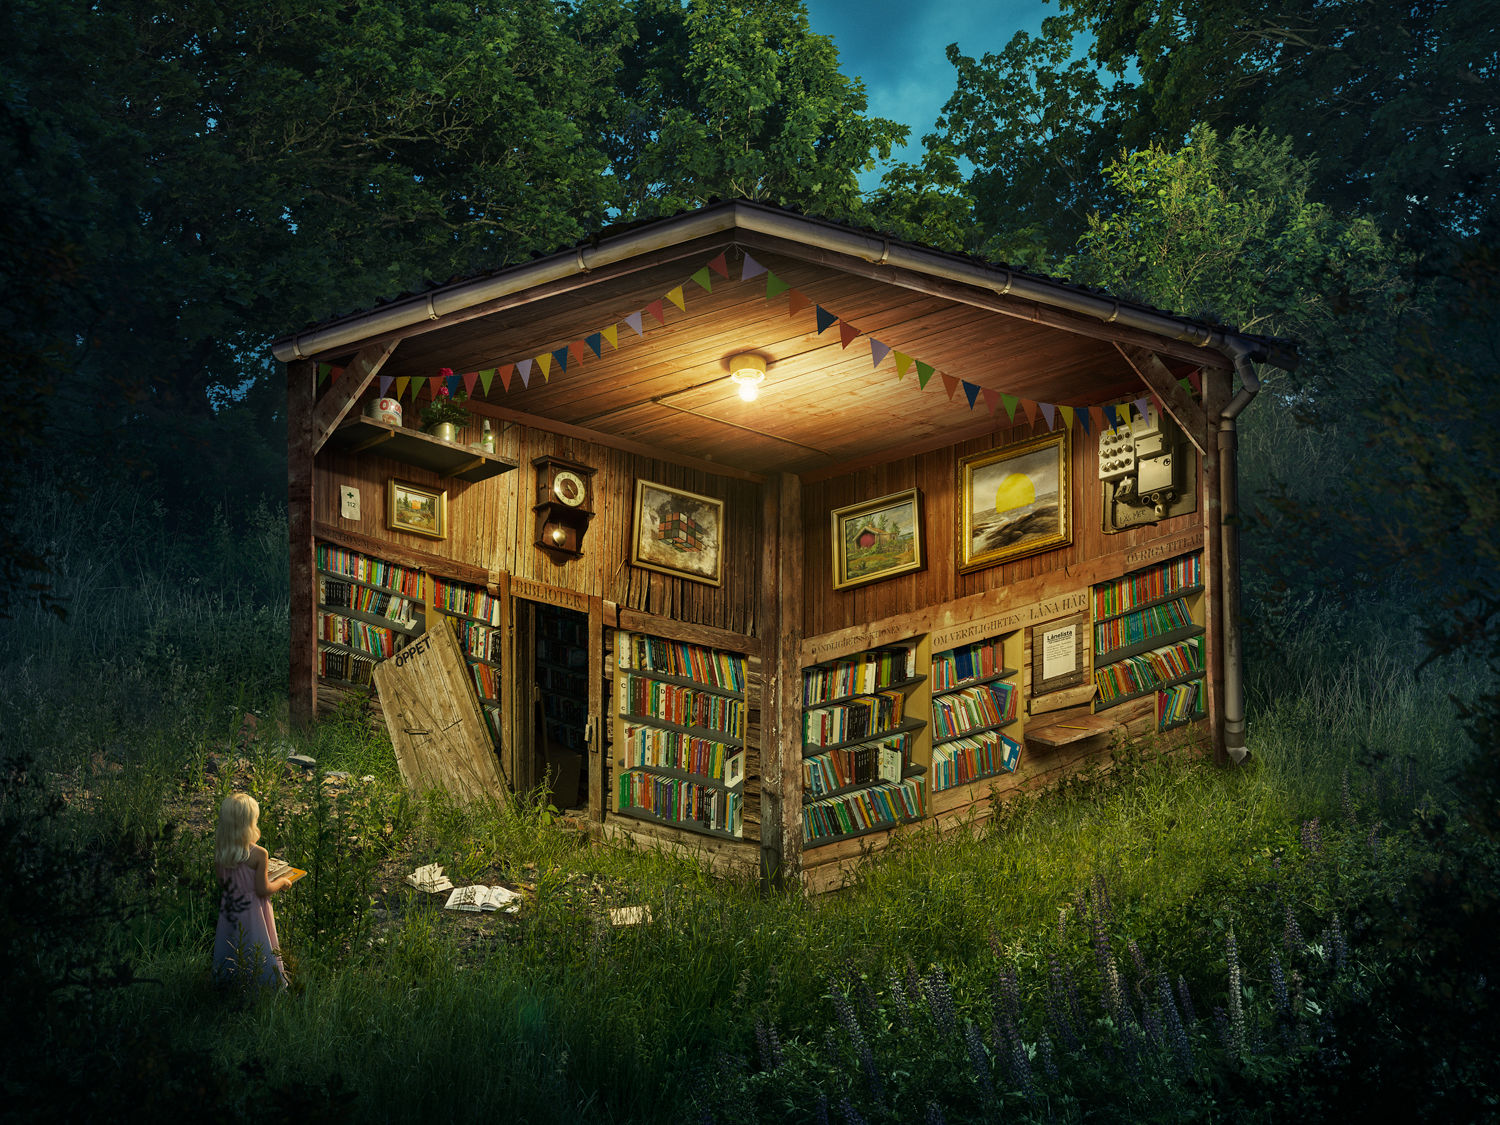 'The Forest Library' by Erik Johansson c/o AGENT MOLLY & CO